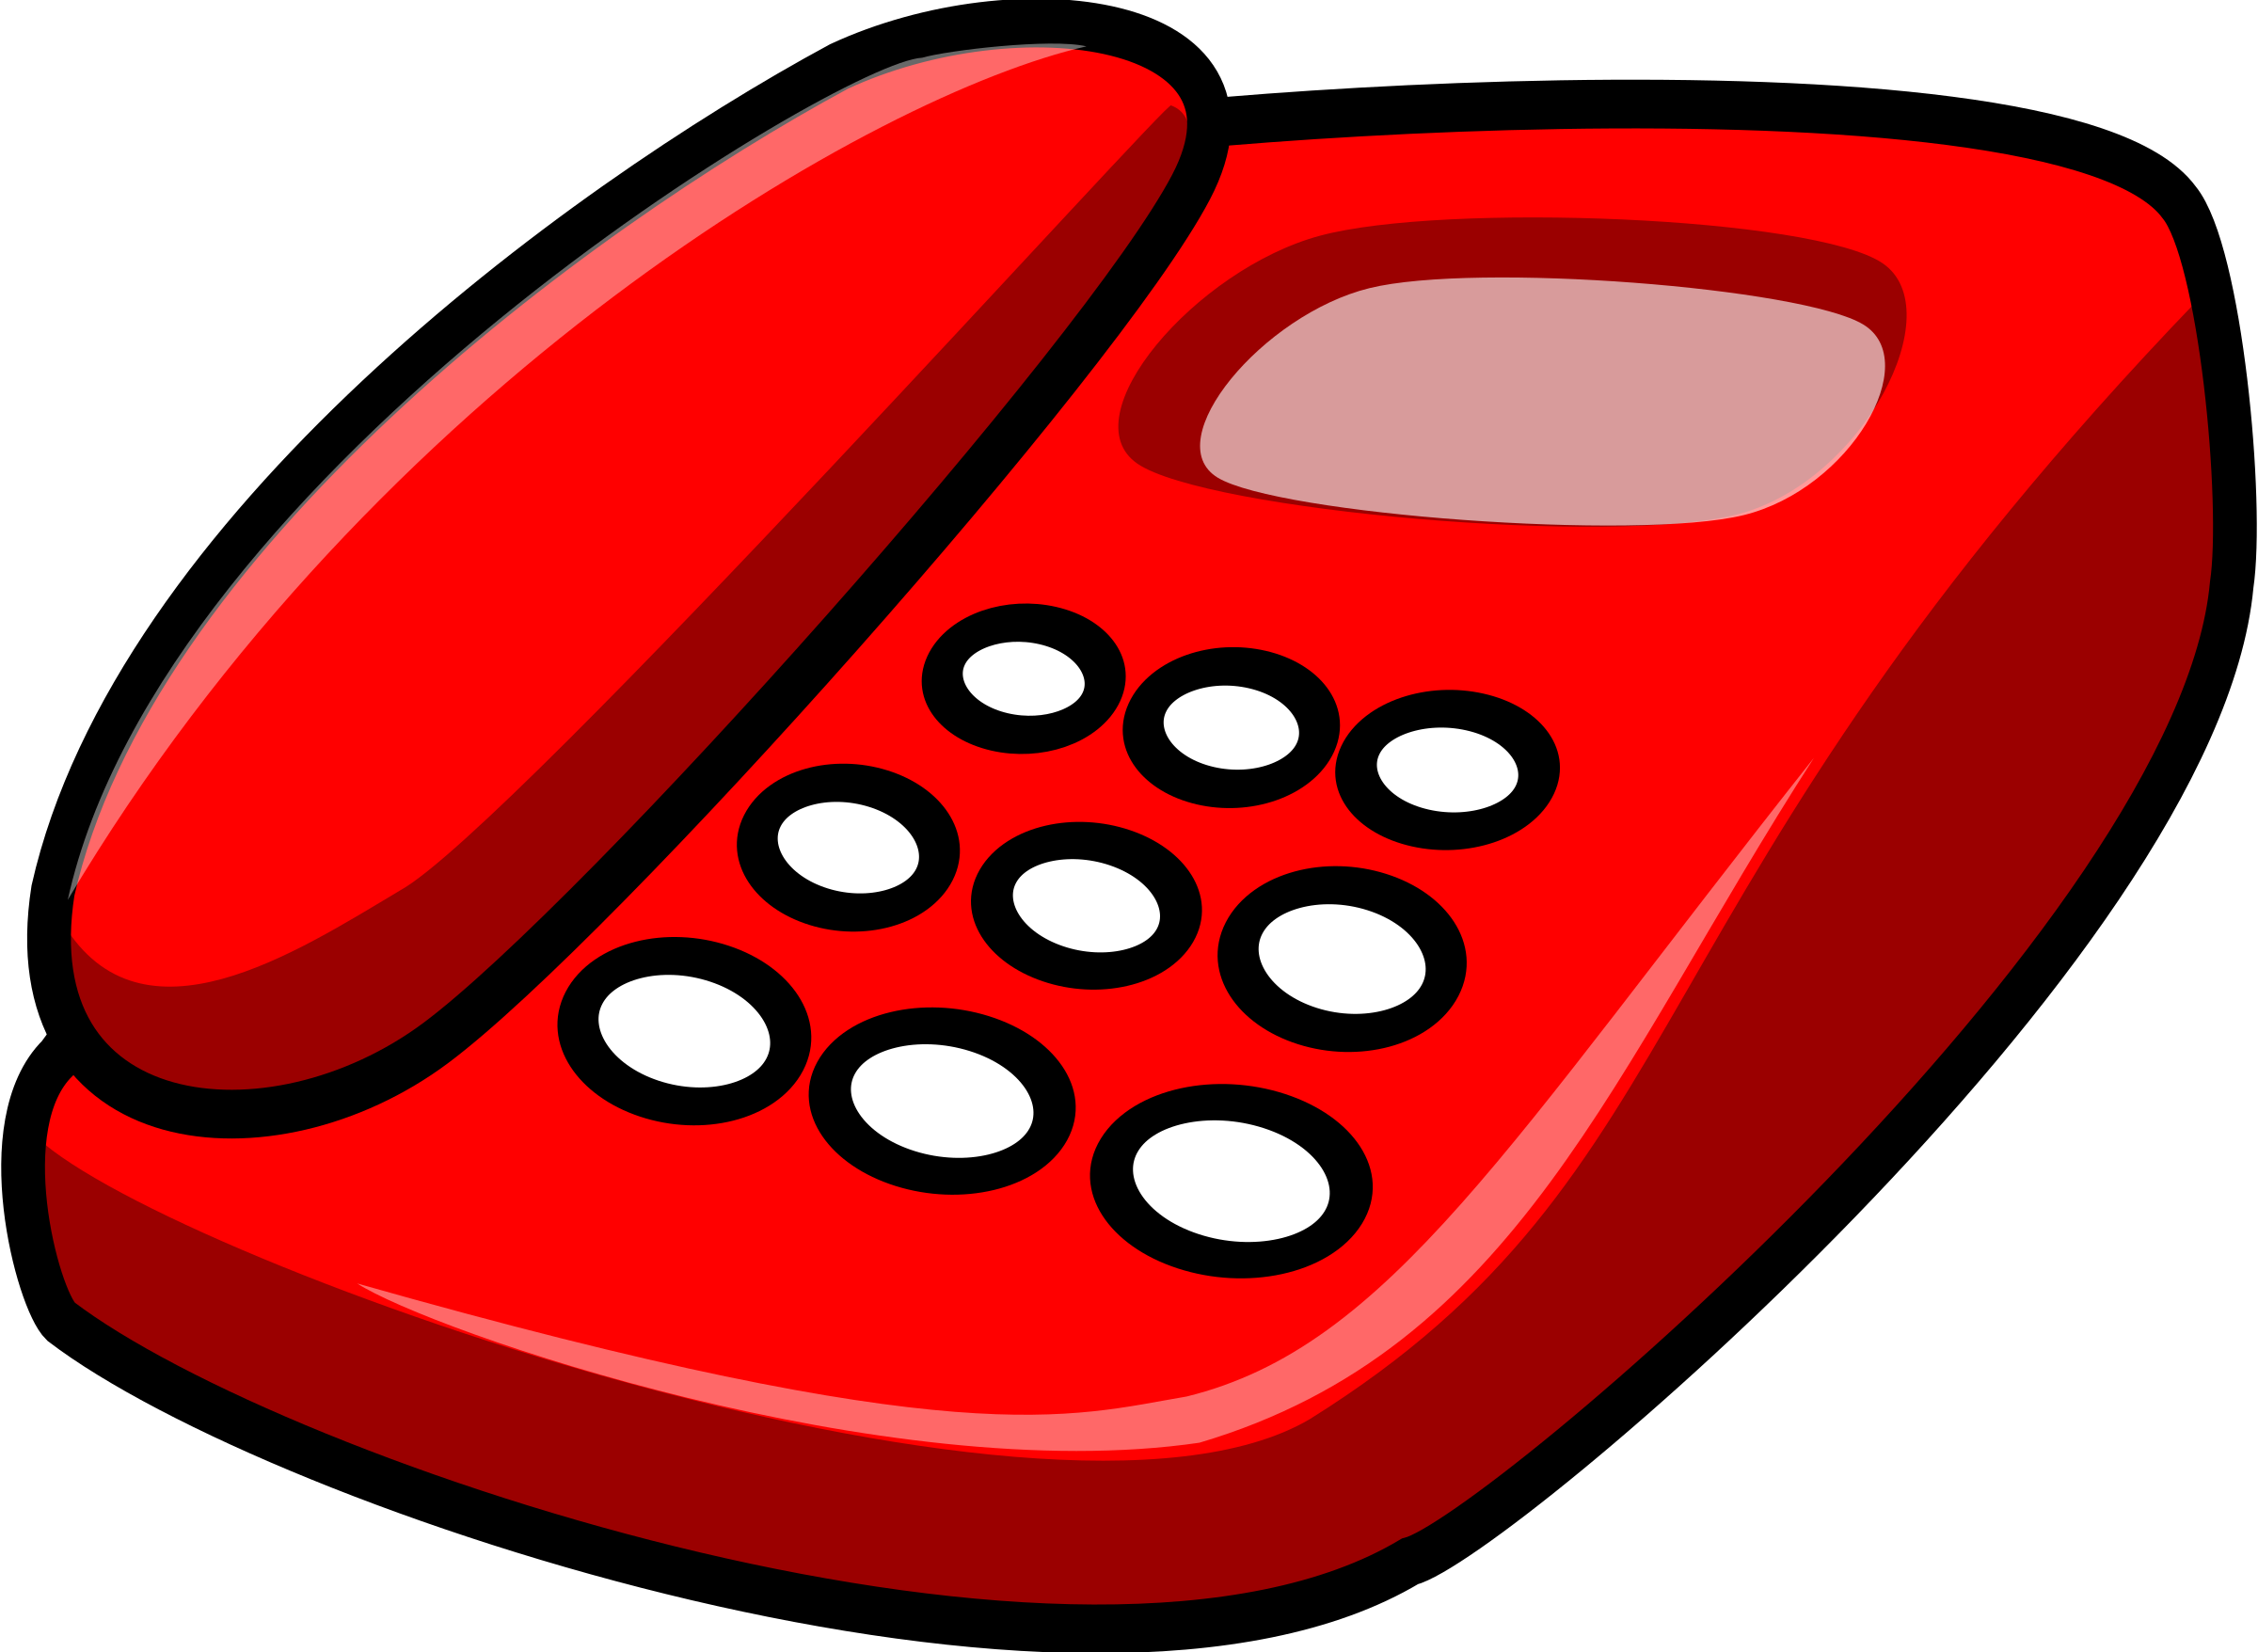 Mimooh big image png. Telephone clipart red telephone